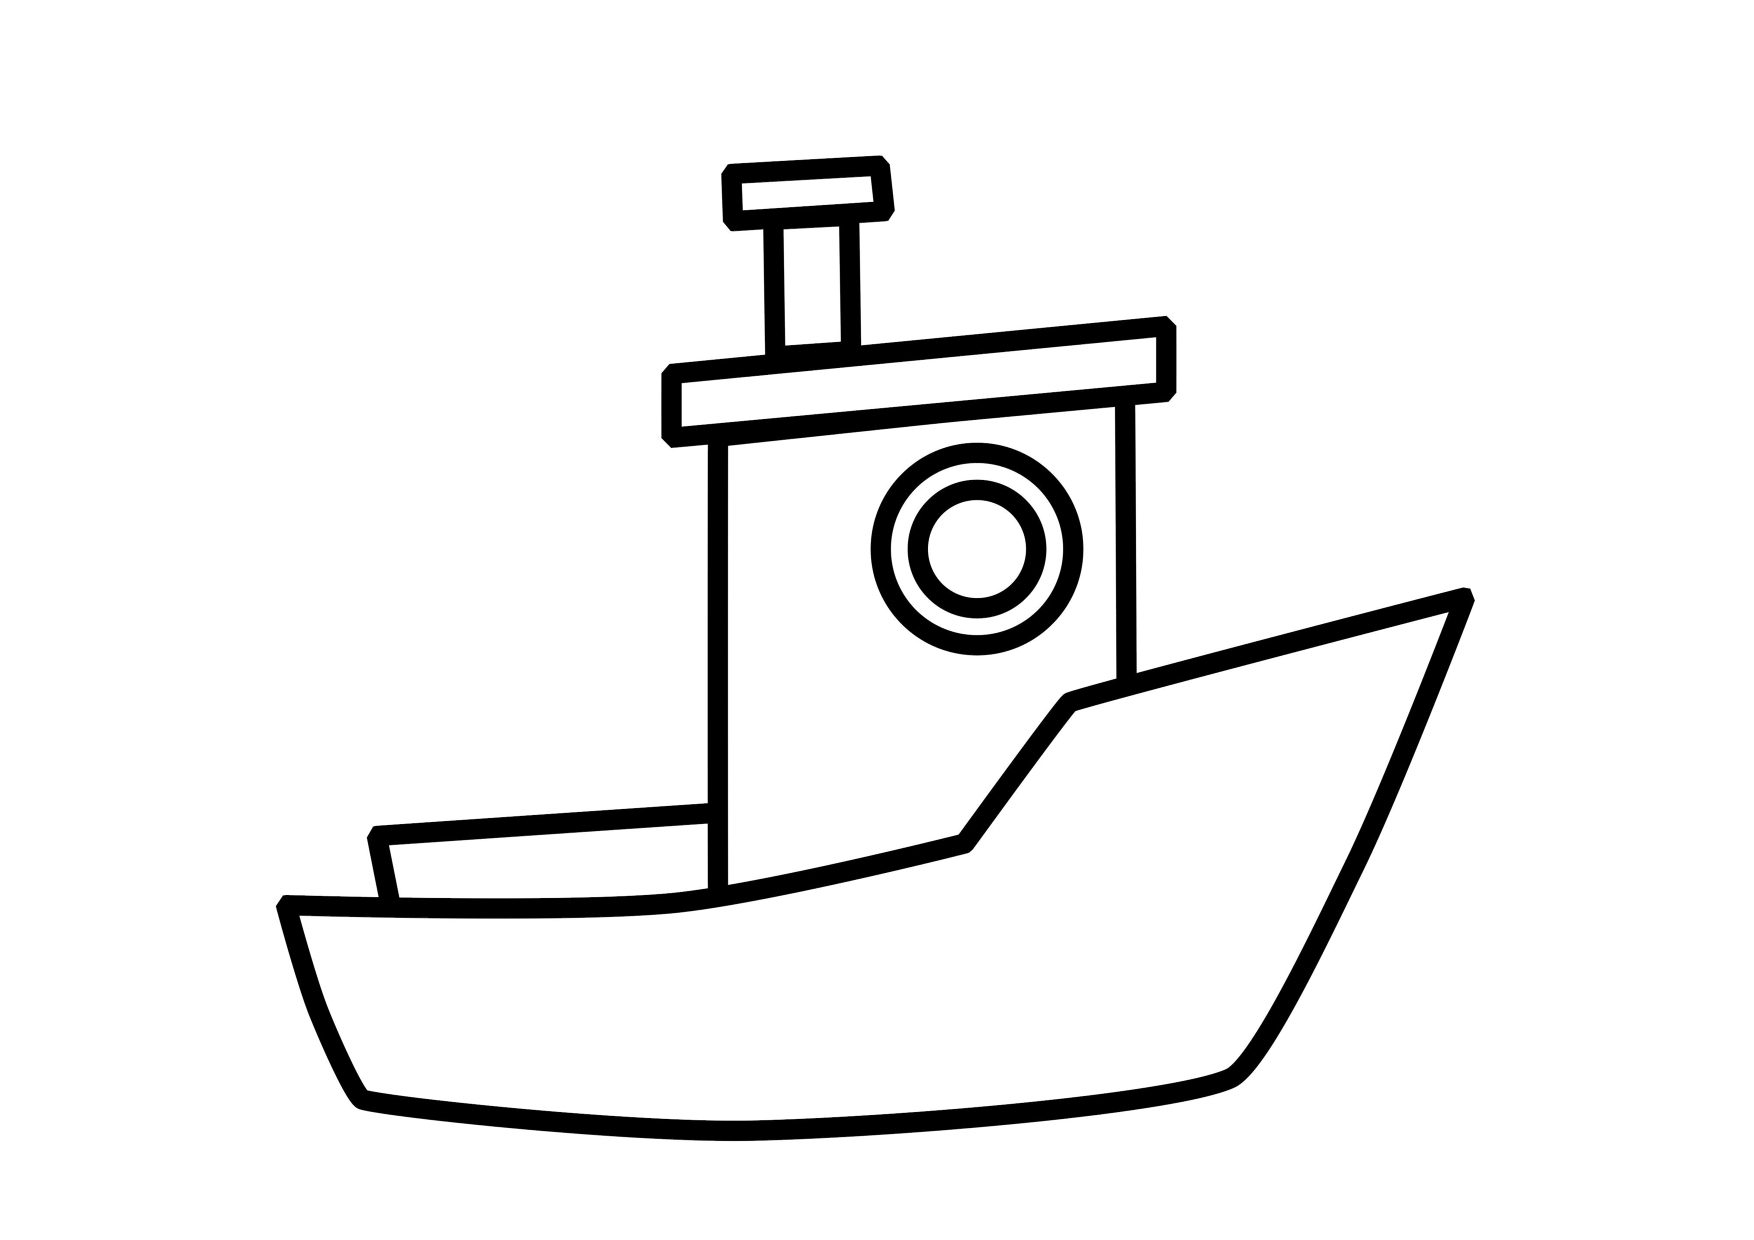 Boat Coloring Pages - Google Search | Coloring Pages | Book Boat - Free Printable Sailboat Template